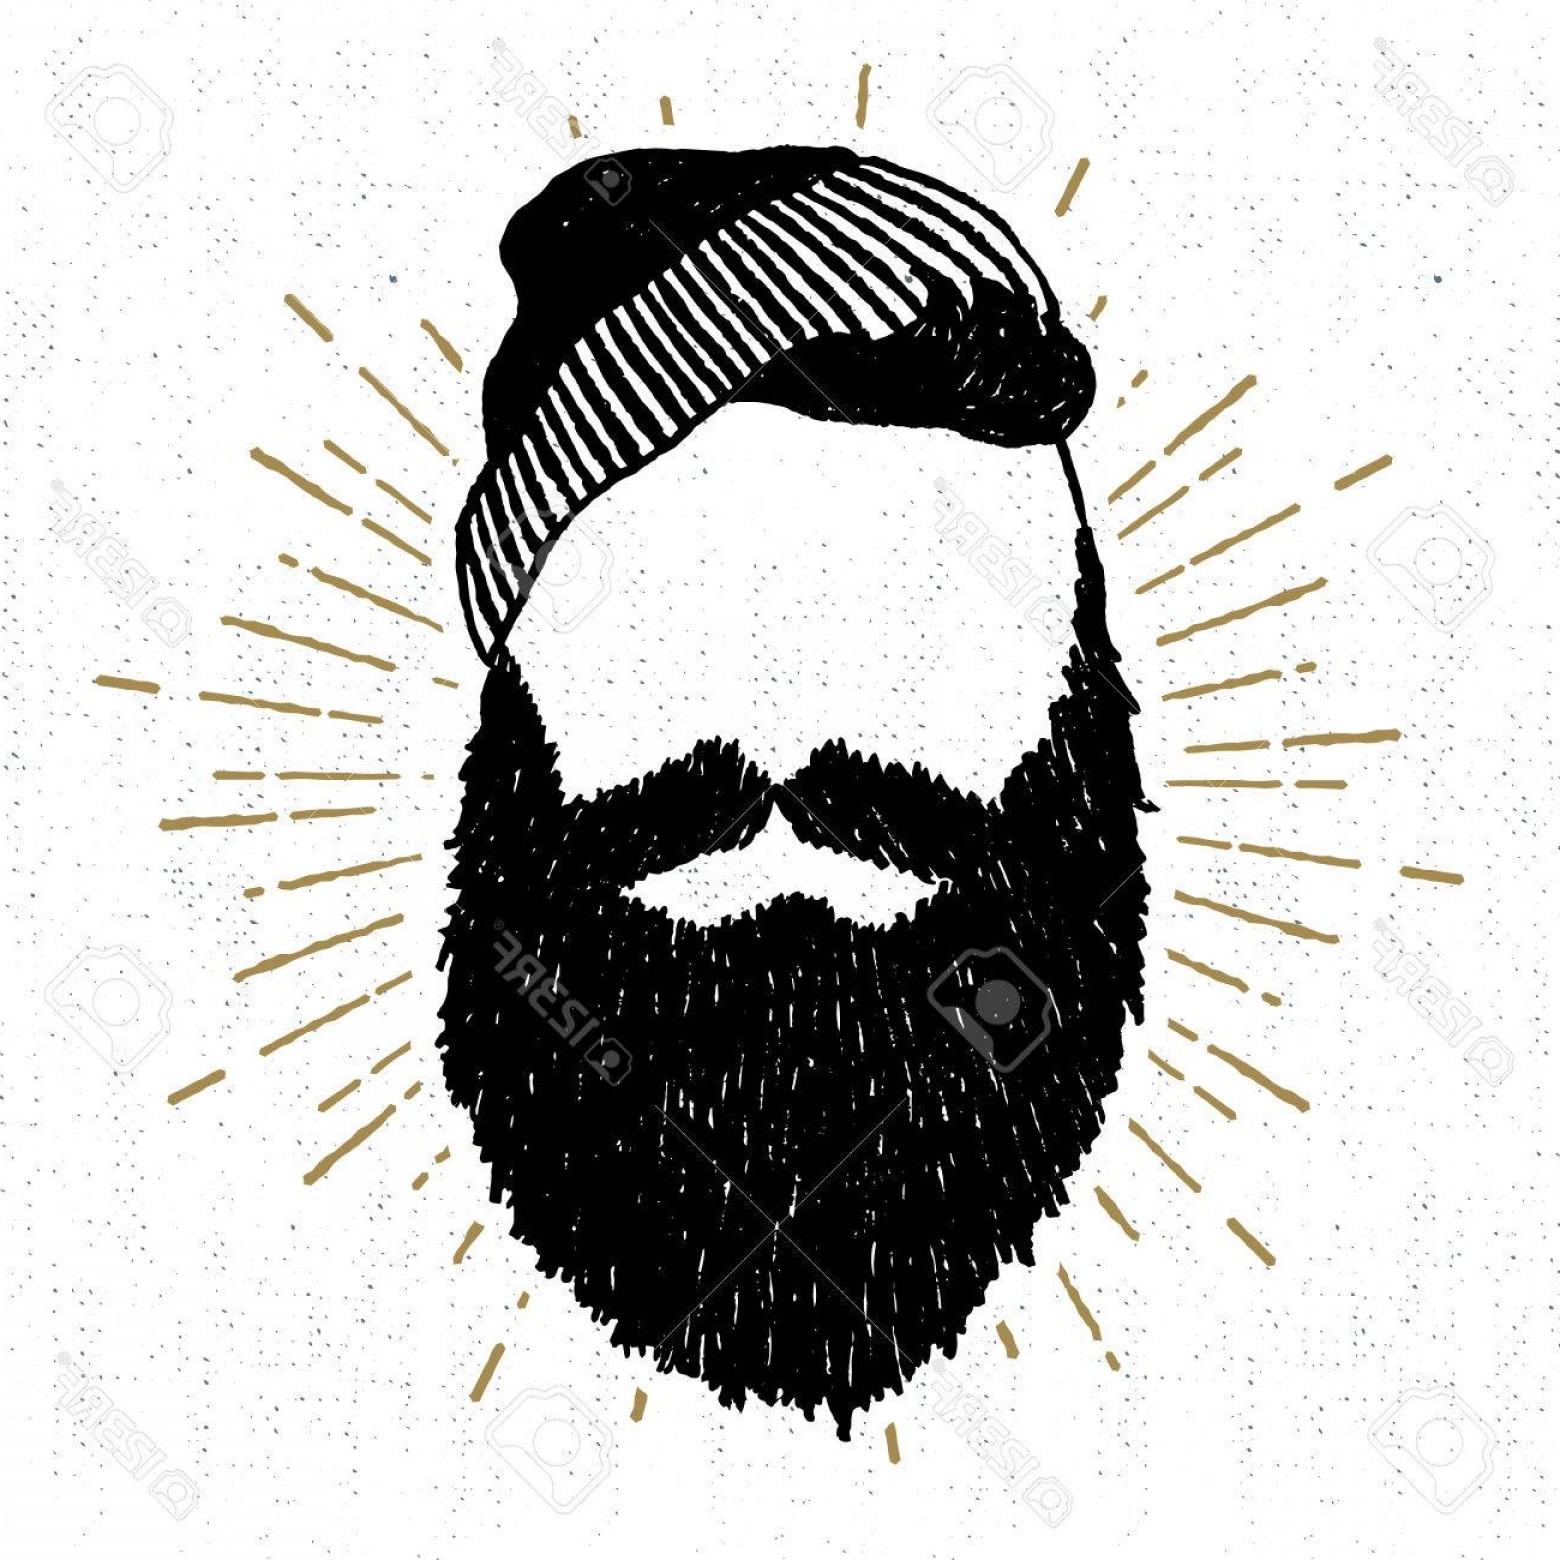 Fear The Beard Vector: Photostock Vector Hand Drawn Vintage Icon With A Textured Face With Beard Vector Illustration